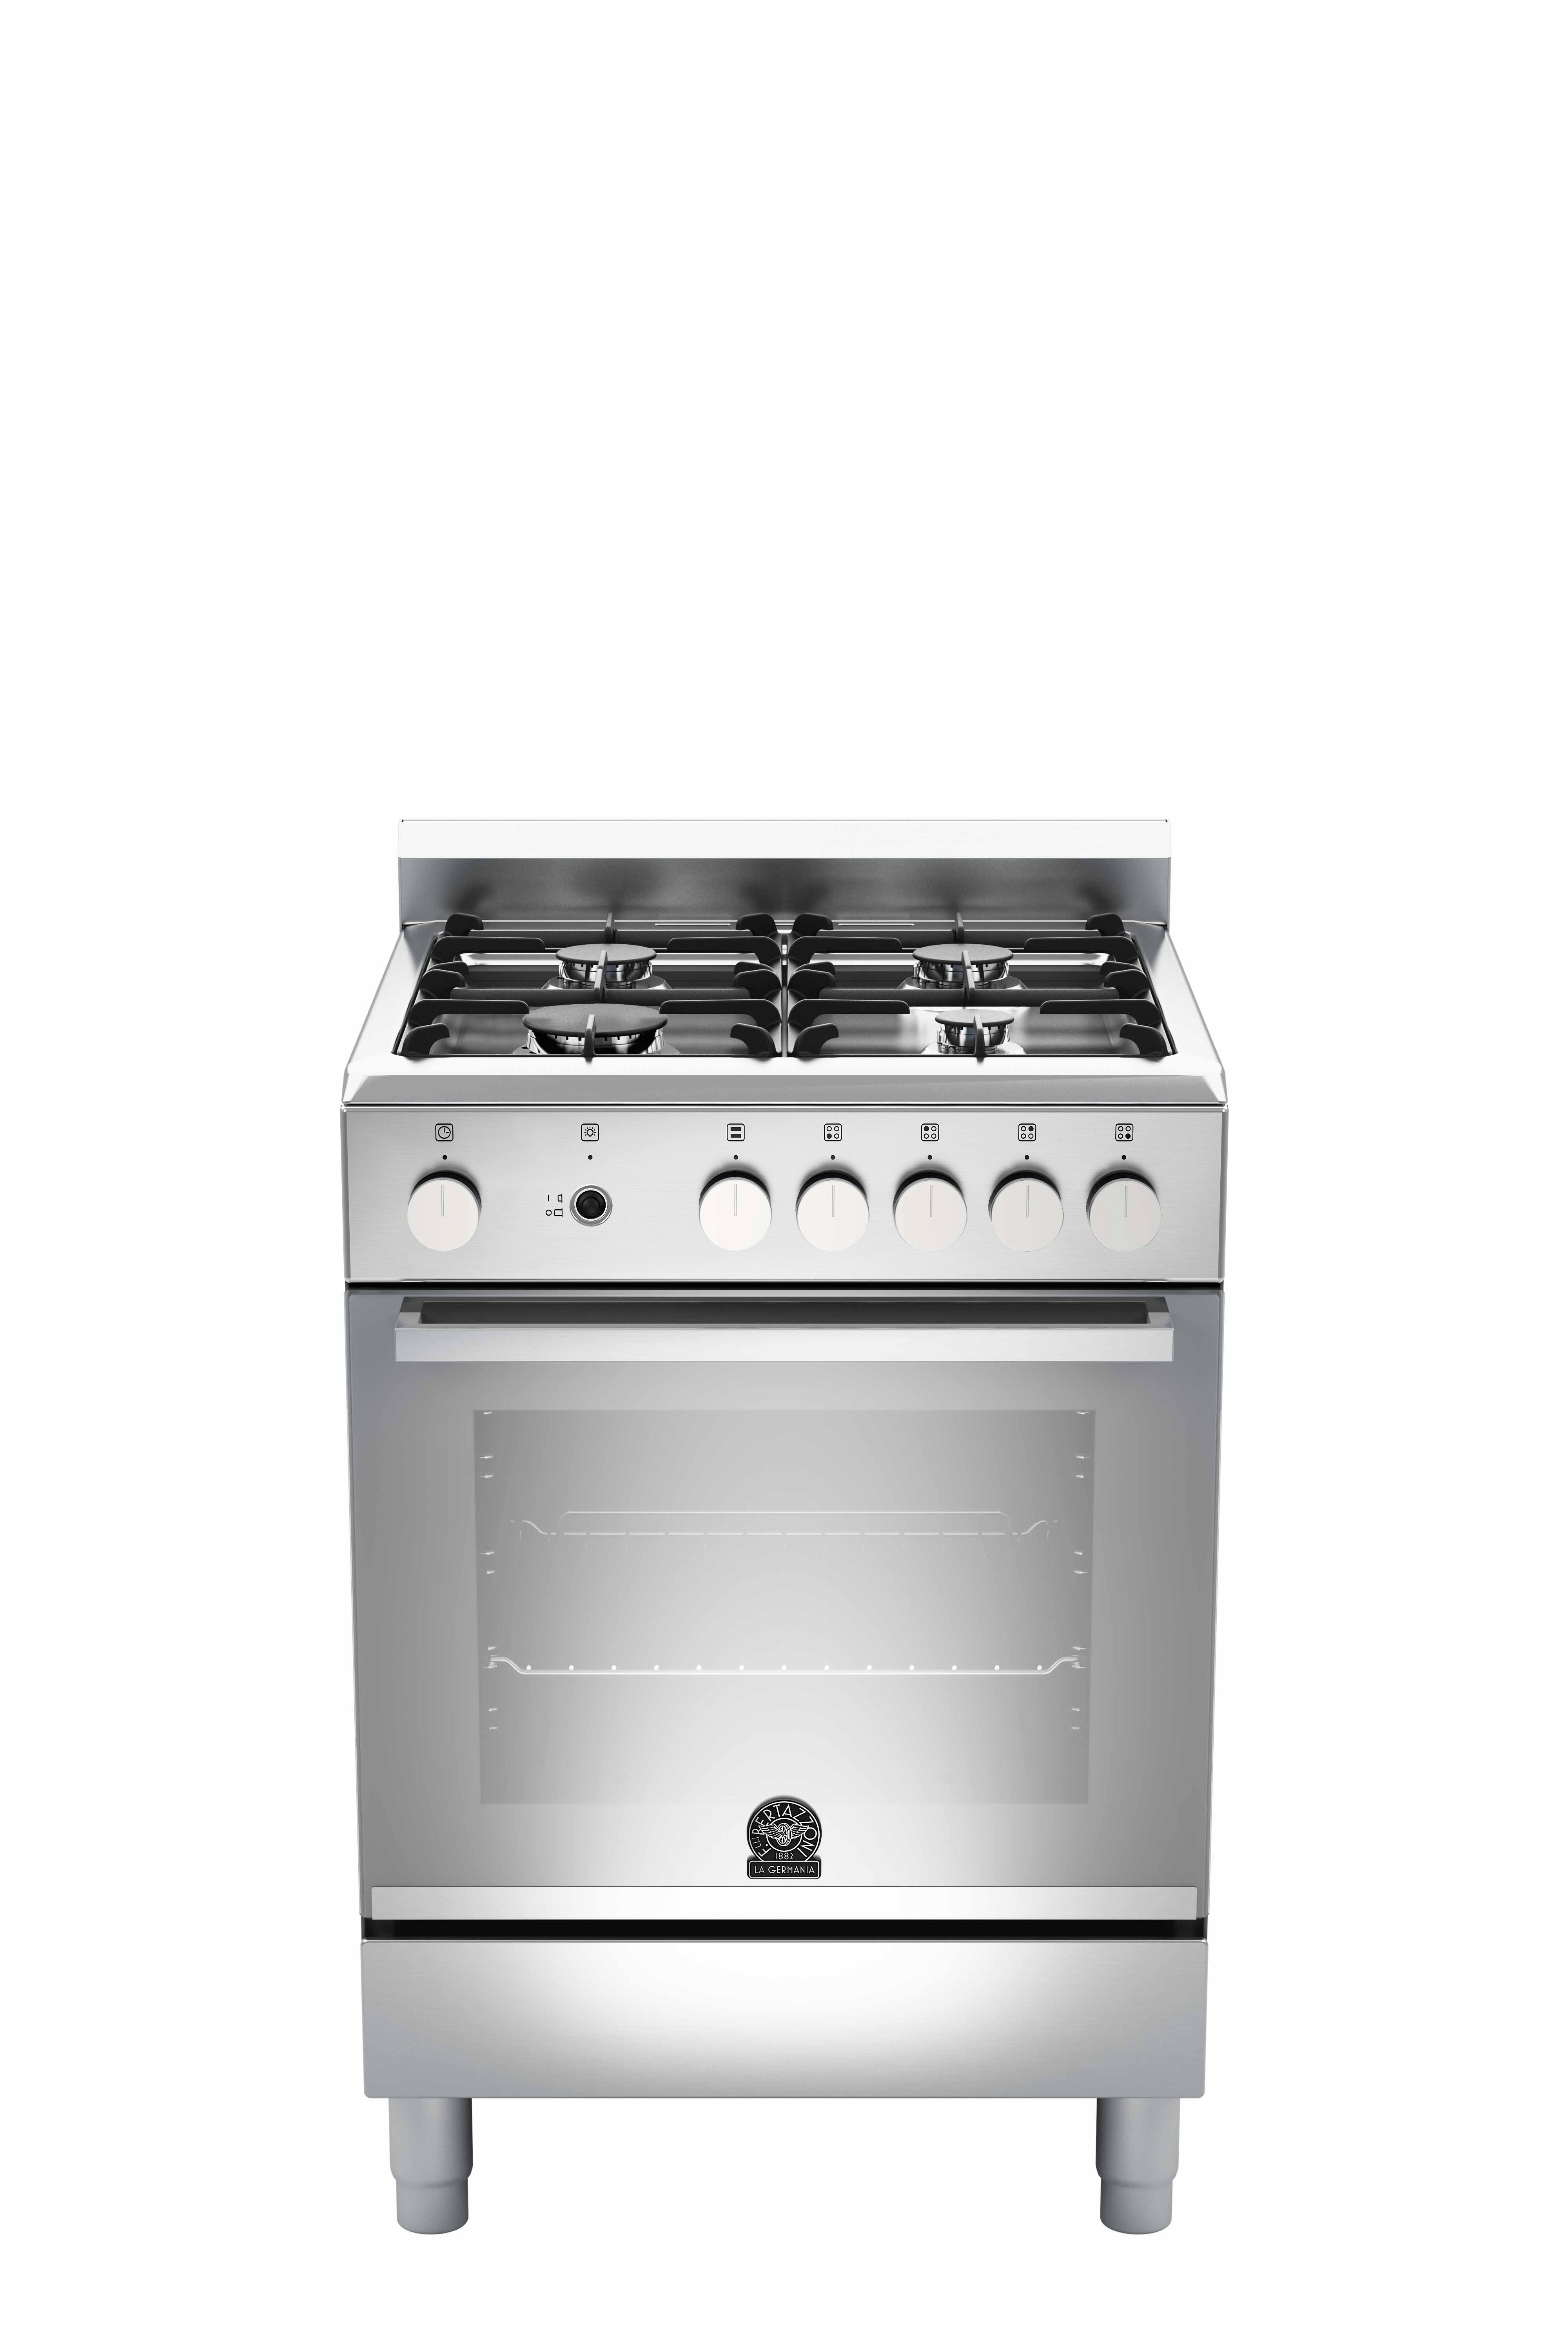 la-germania-europa-3-year-warranty-60cm-gas-hob--gas-oven--stainless-steel-tu64031dxs